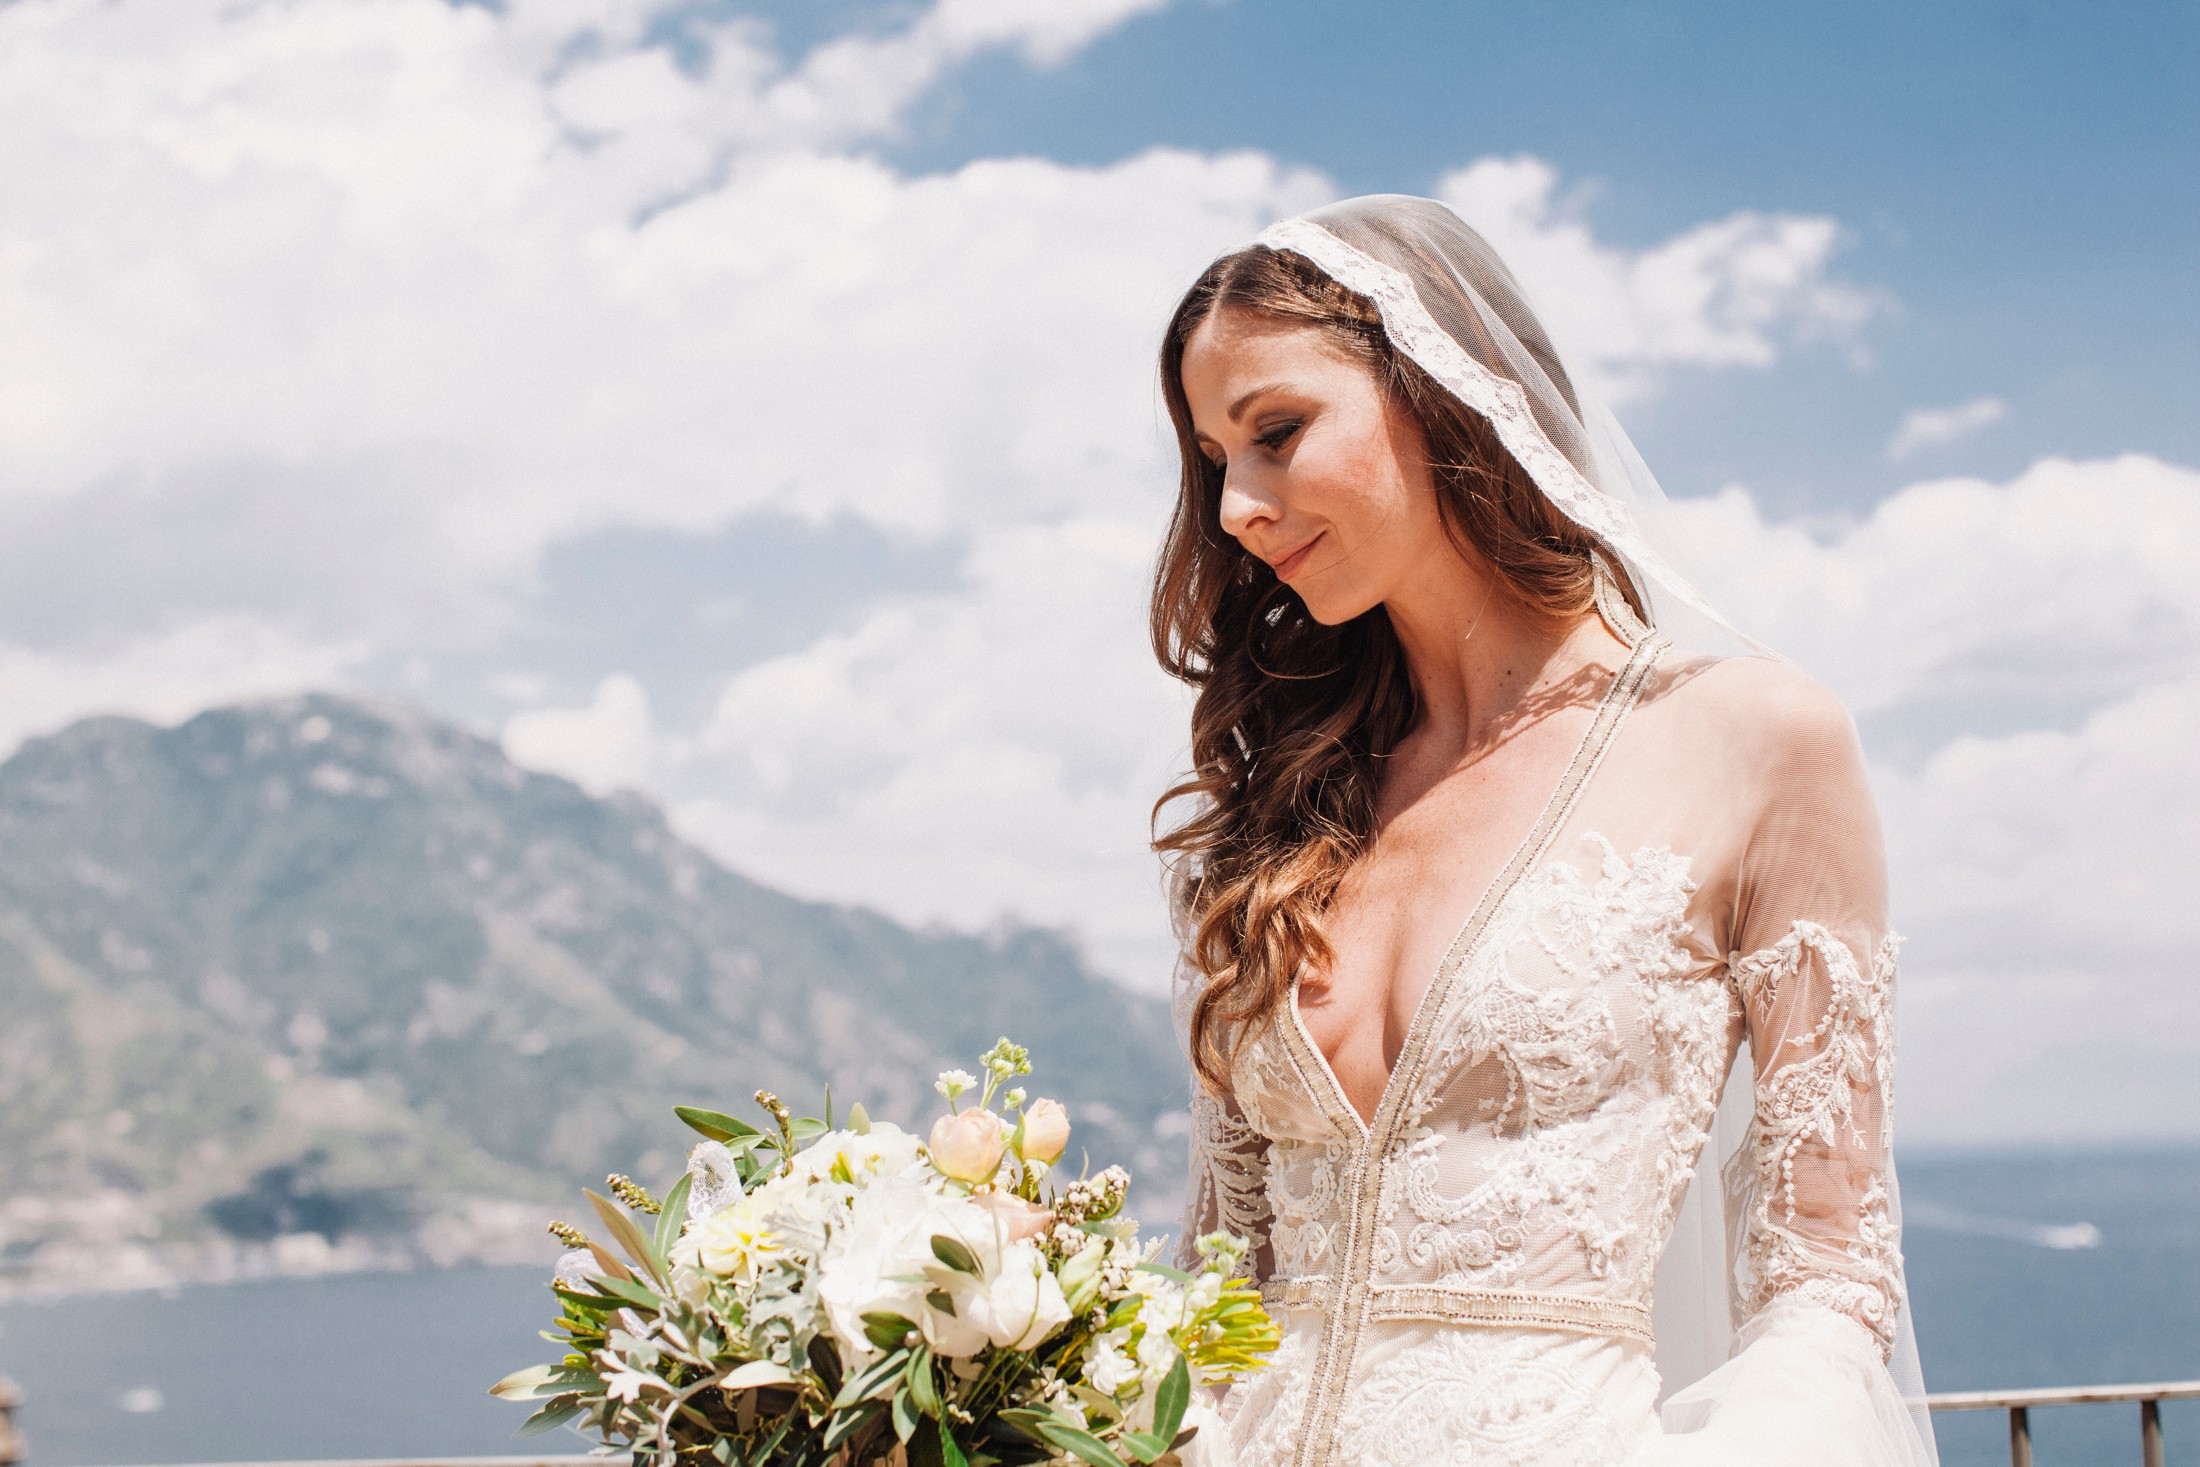 wedding at villa cimbrone - bride's portrait on the balcony with mountains as background